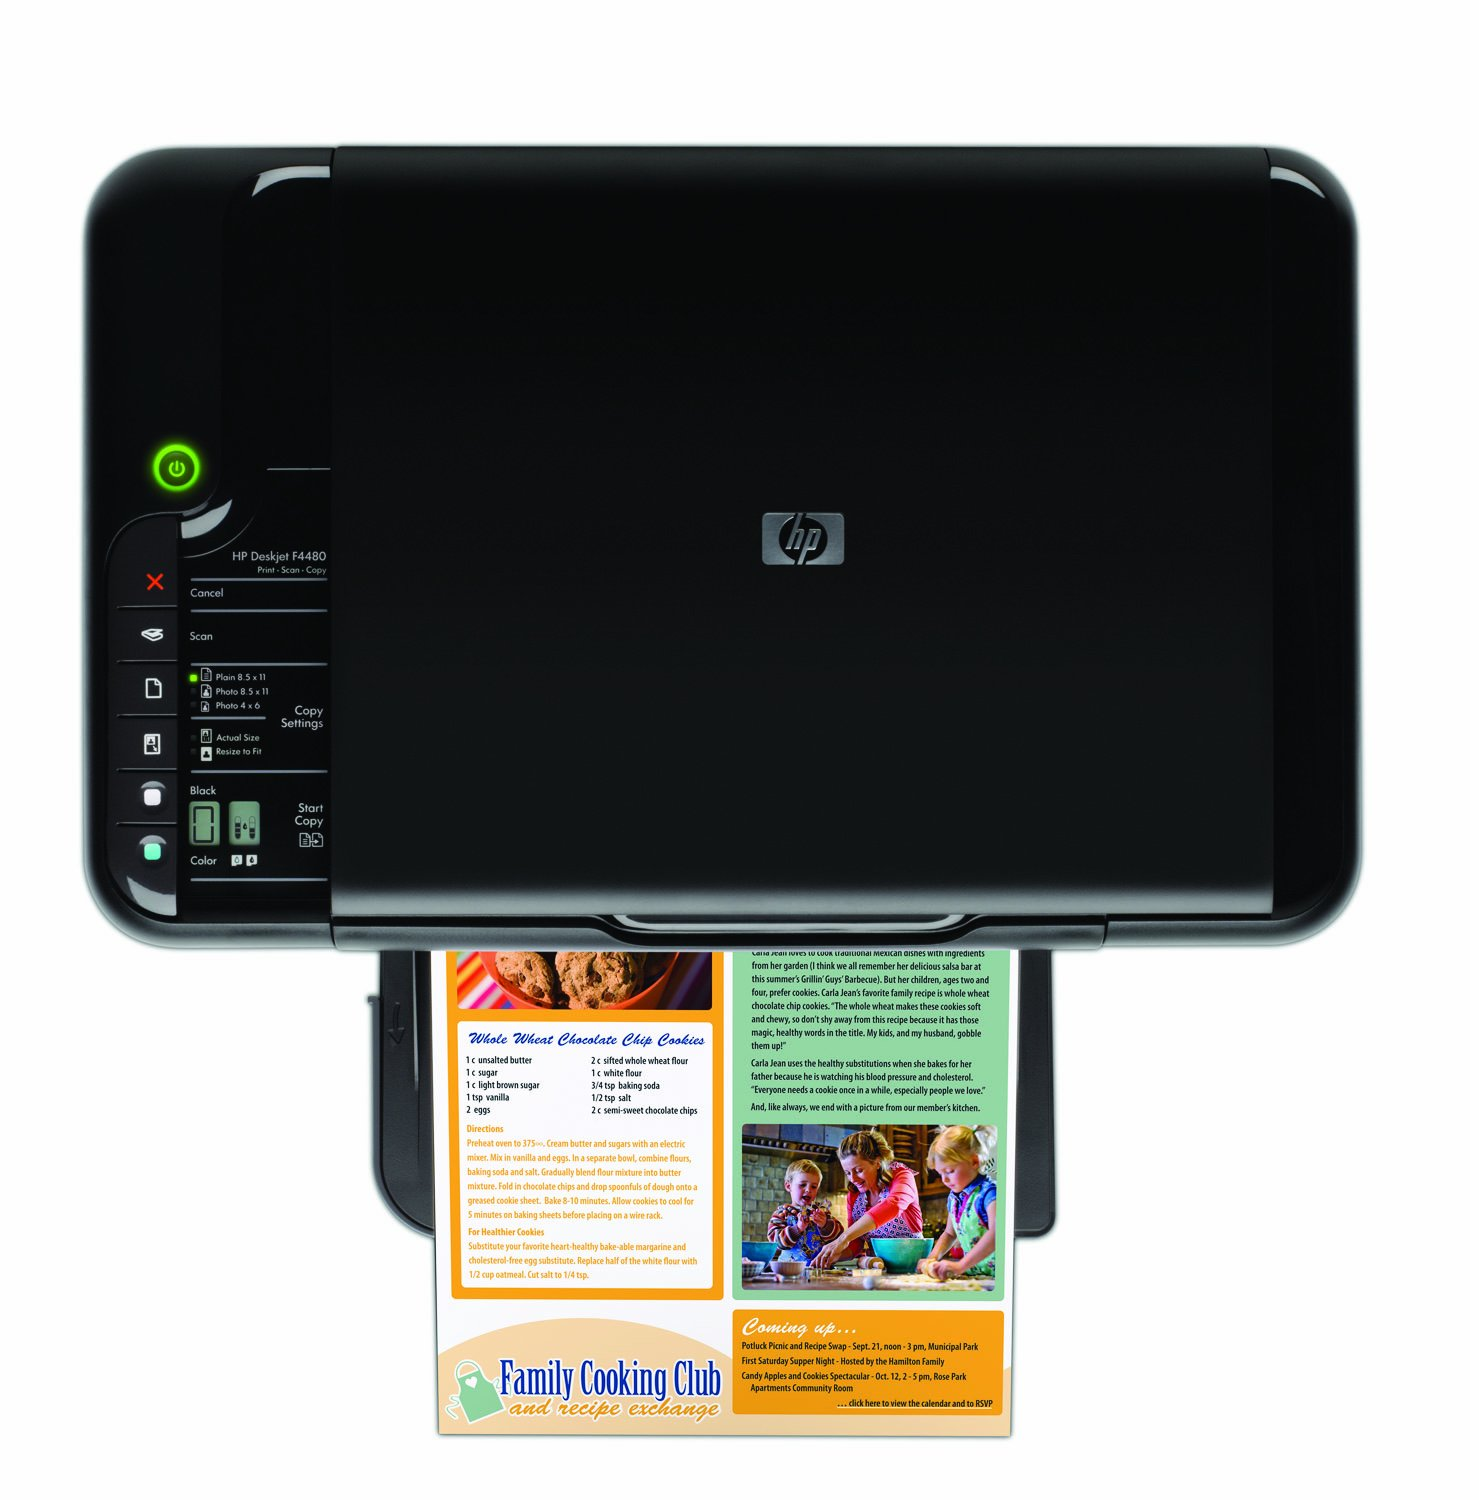 Hp deskjet f4480 all in one impresora de inyeccin de tinta cb745 a hp deskjet f4480 all in one impresora de inyeccin de tinta cb745 a b1h amazon electrnicos fandeluxe Choice Image